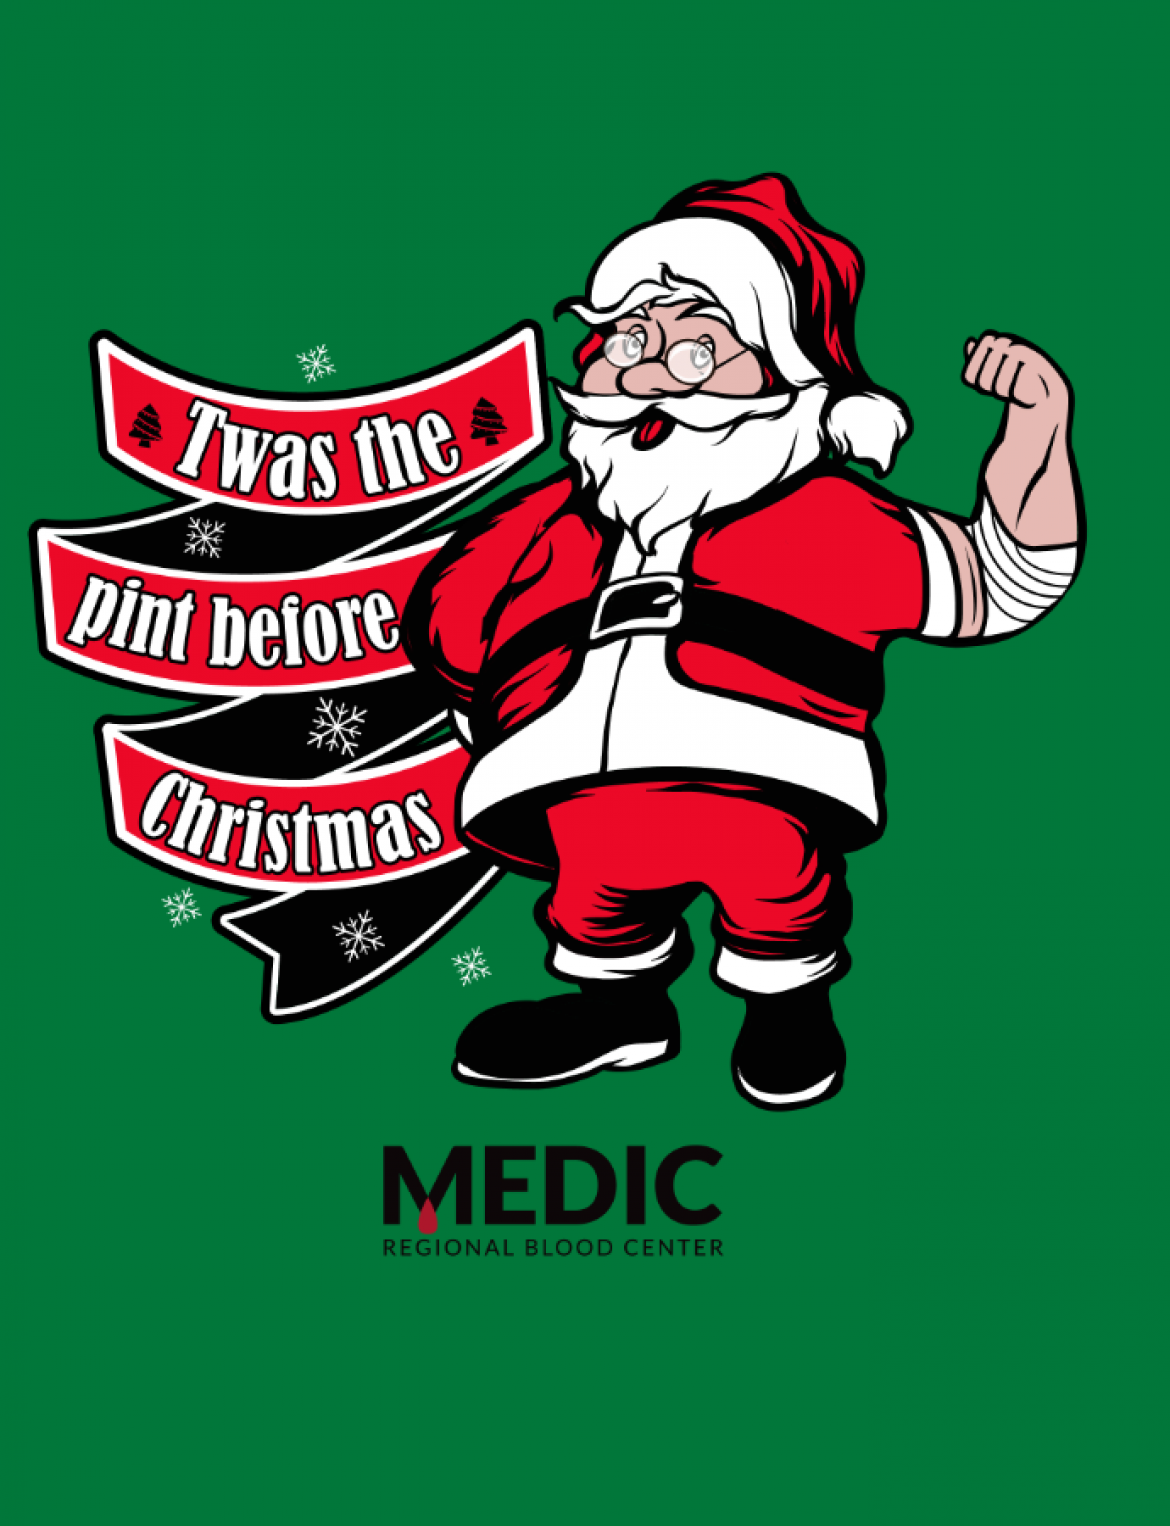 medic regional blood center is excited to host twas the the pint before christmas along with ober gatlinburg and hot 1045 to provide a special treat to